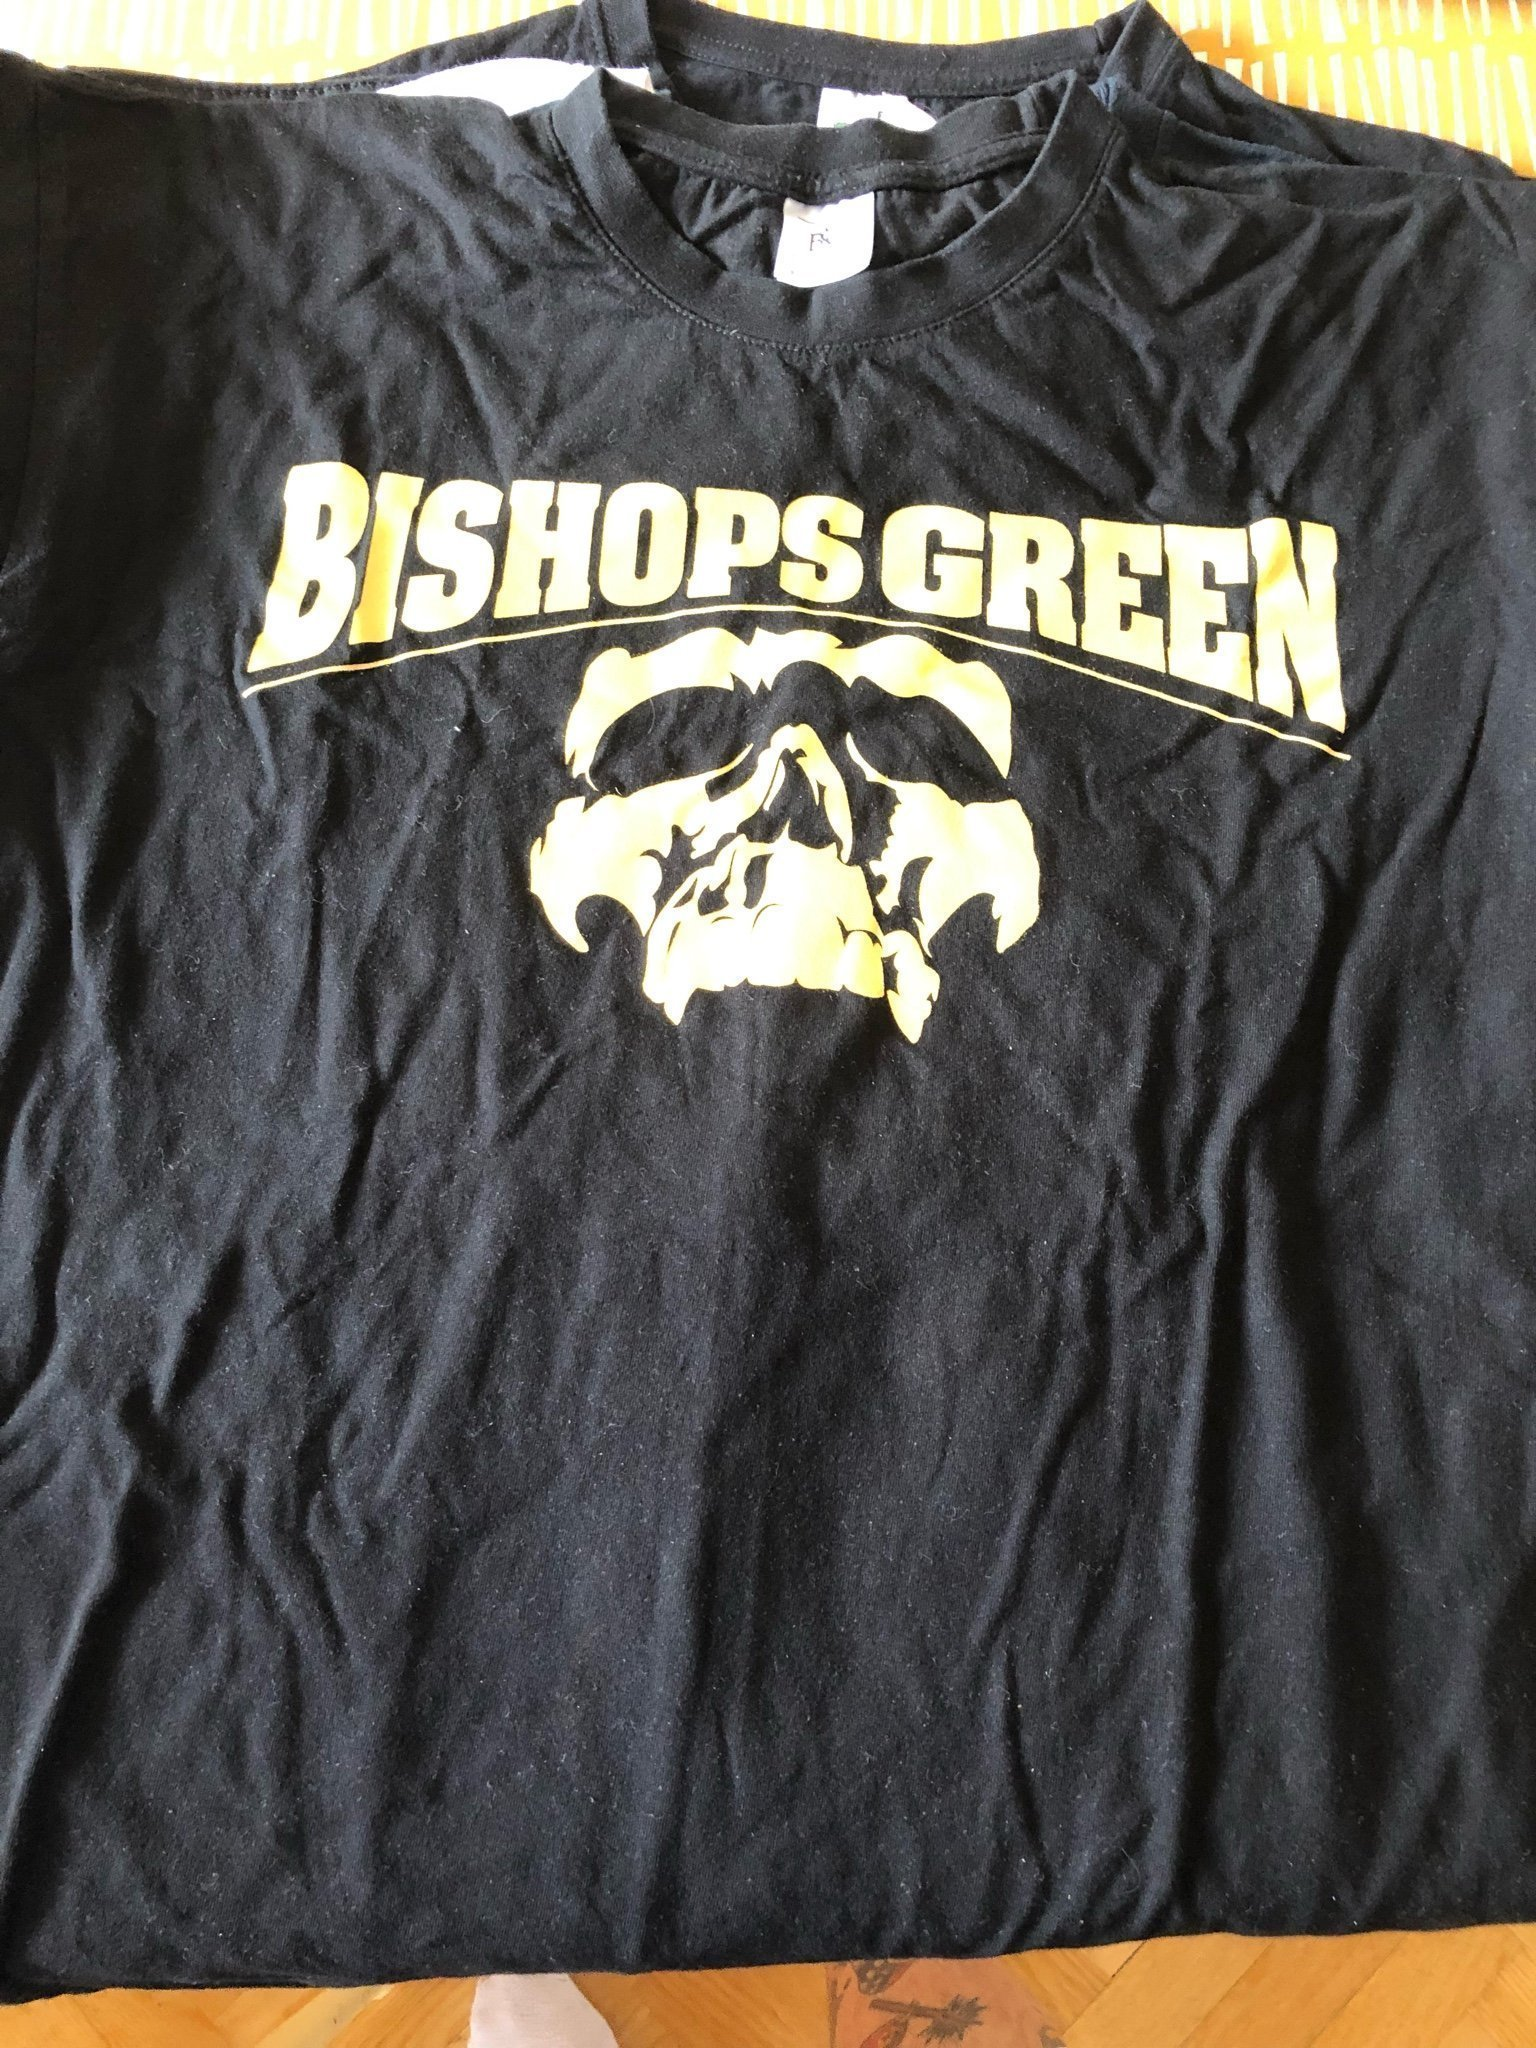 BISHOPS GREEN - ts - punk